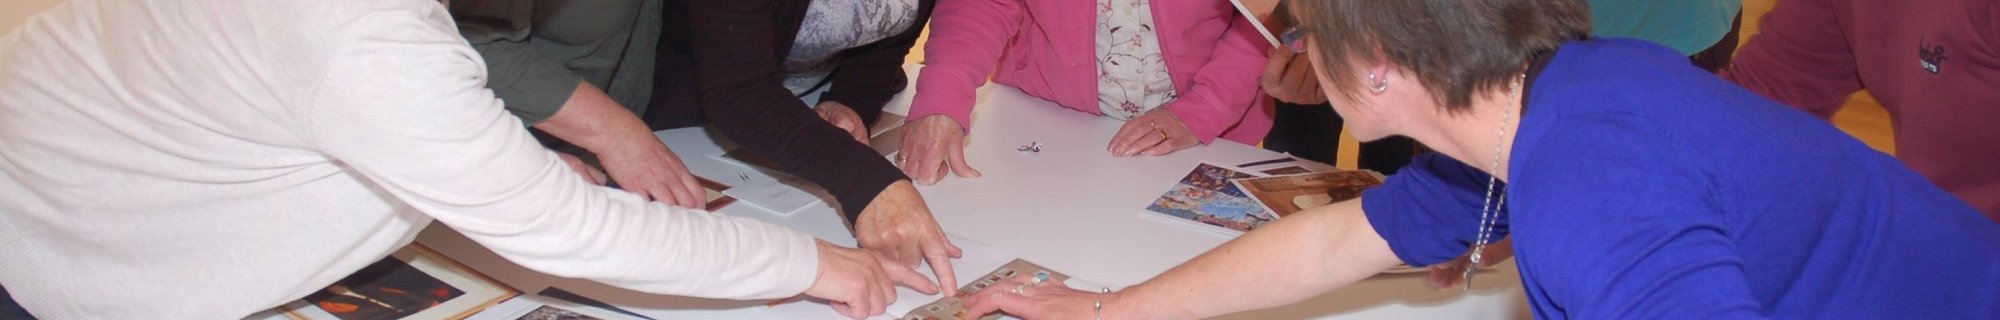 Image of group of people looking at pictures